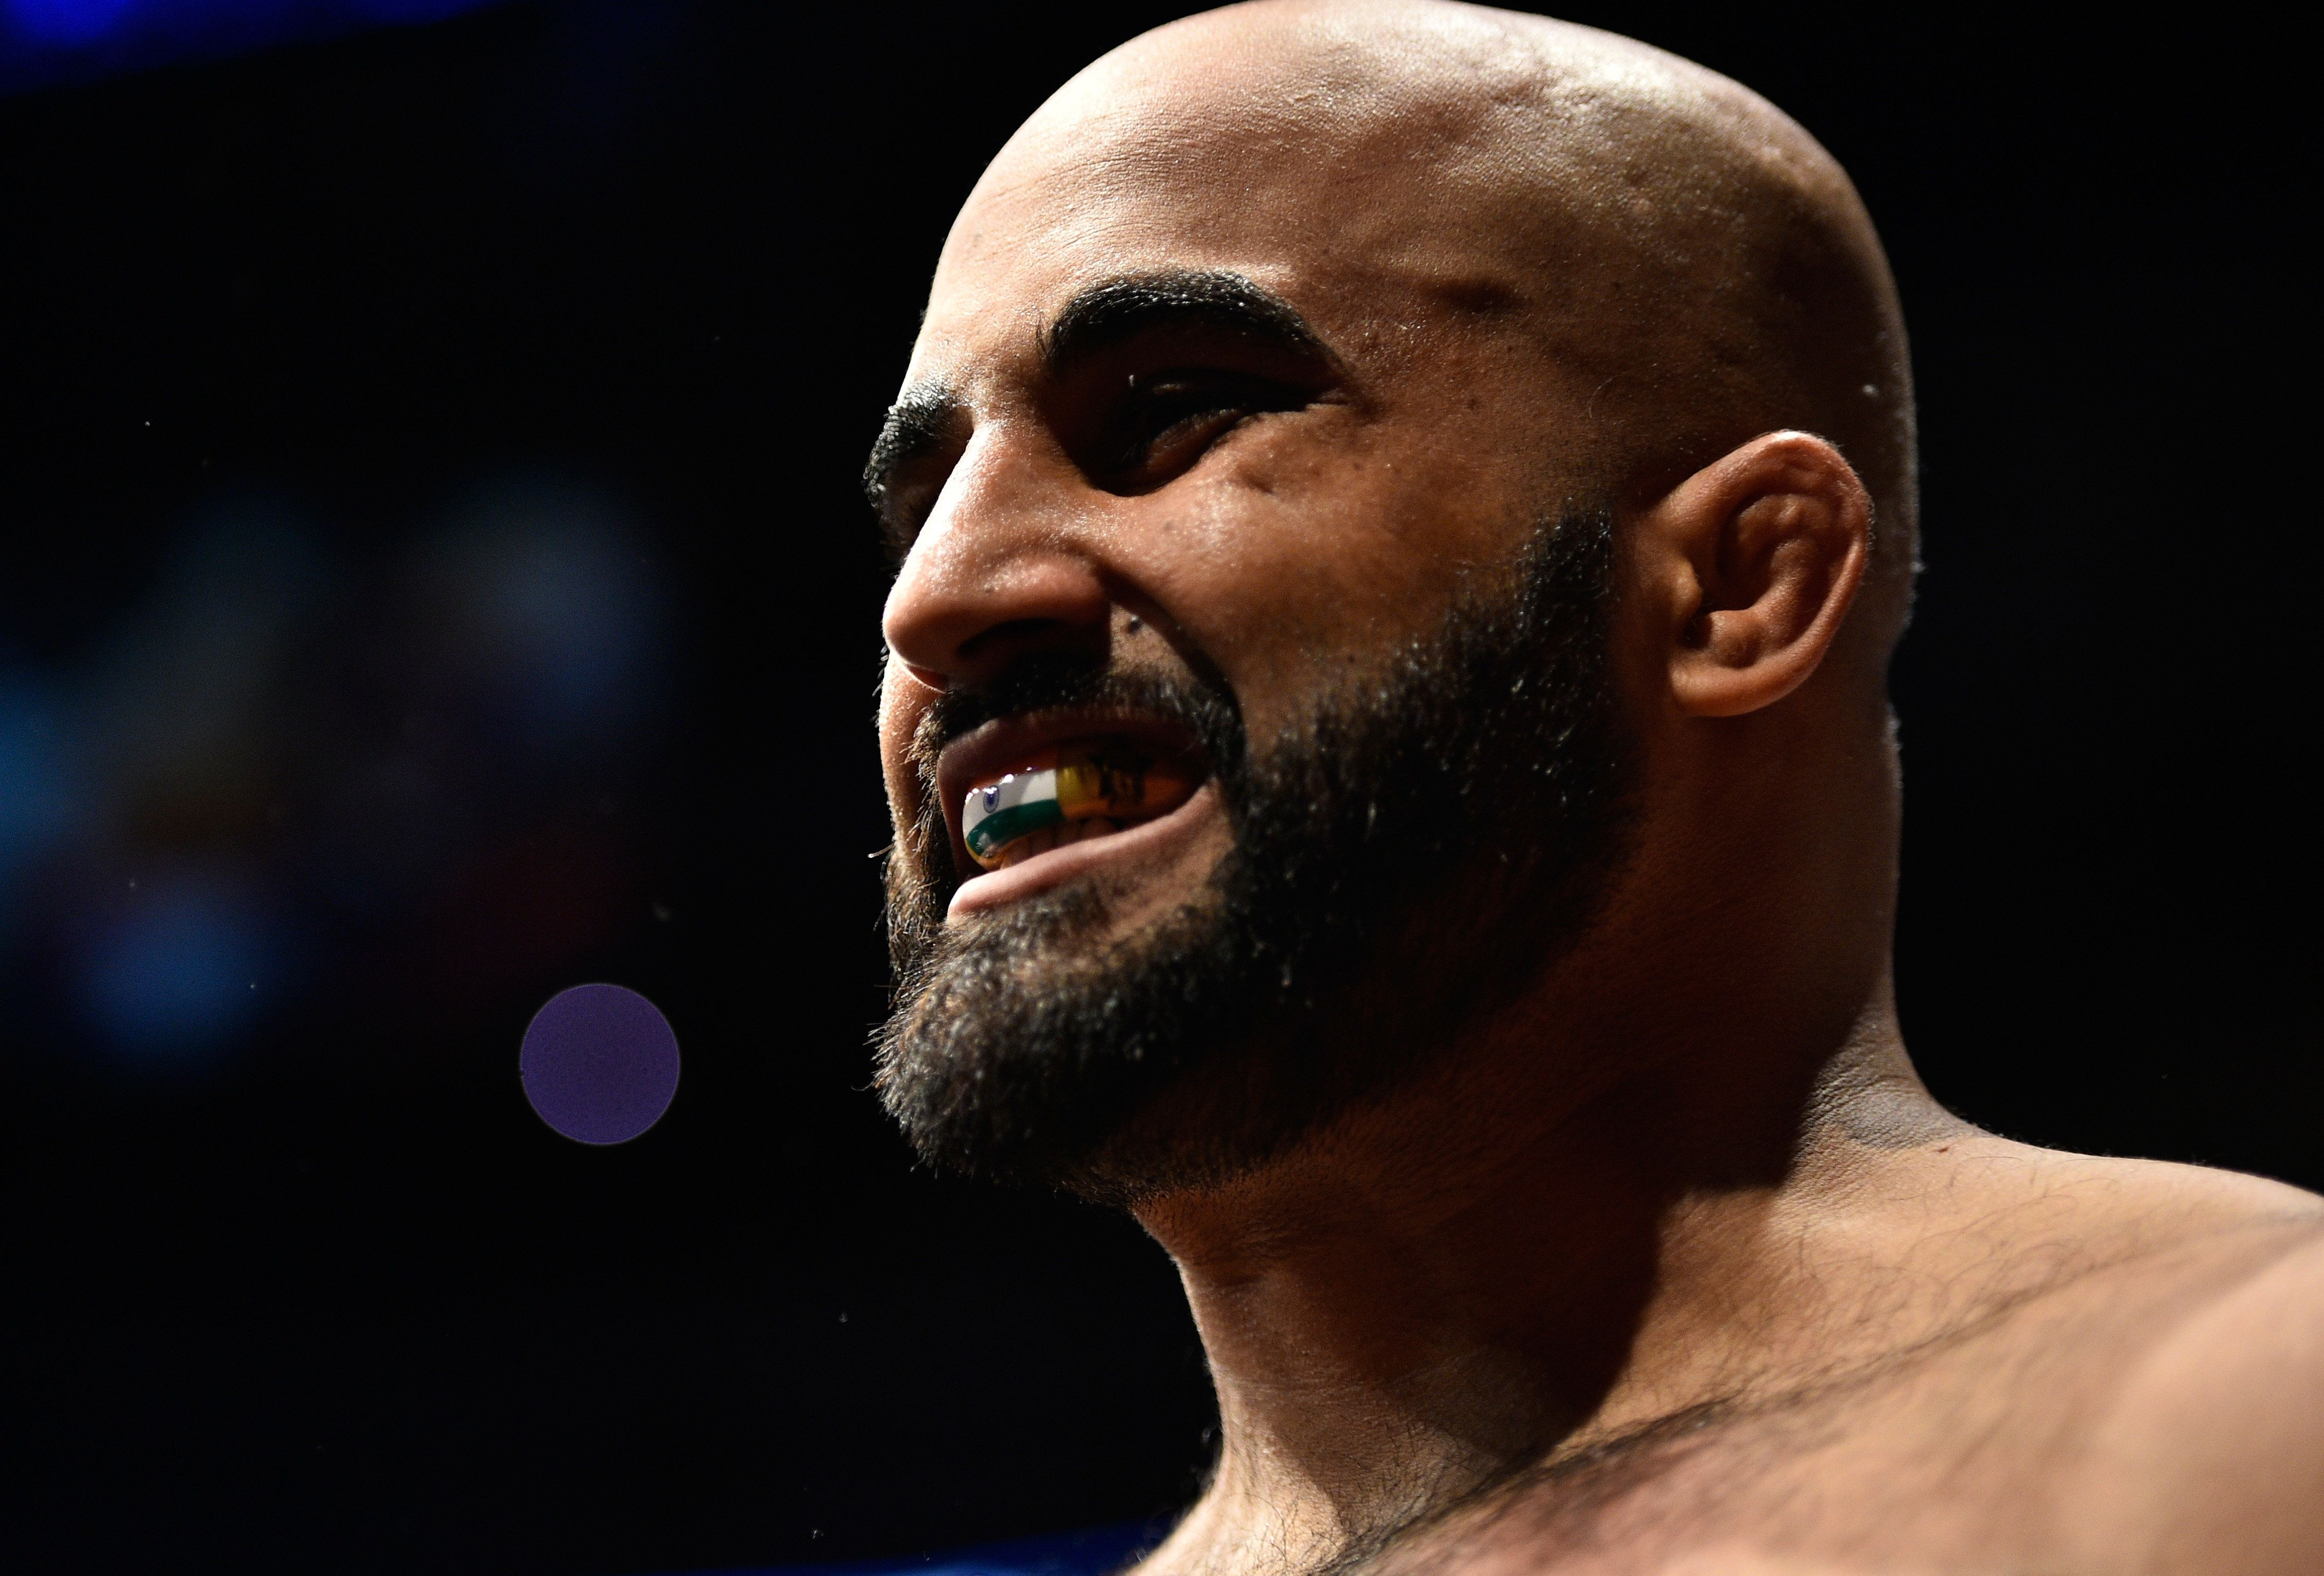 EDMONTON, AB - SEPTEMBER 09:  Arjan Singh Bhullar of Canada prepares to enter the Octagon before facing Luis Henrique of Brazil in their heavyweight bout during the UFC 215 event inside the Rogers Place on September 9, 2017 in Edmonton, Alberta, Canada. (Photo by Jeff Bottari/Zuffa LLC/Zuffa LLC via Getty Images)